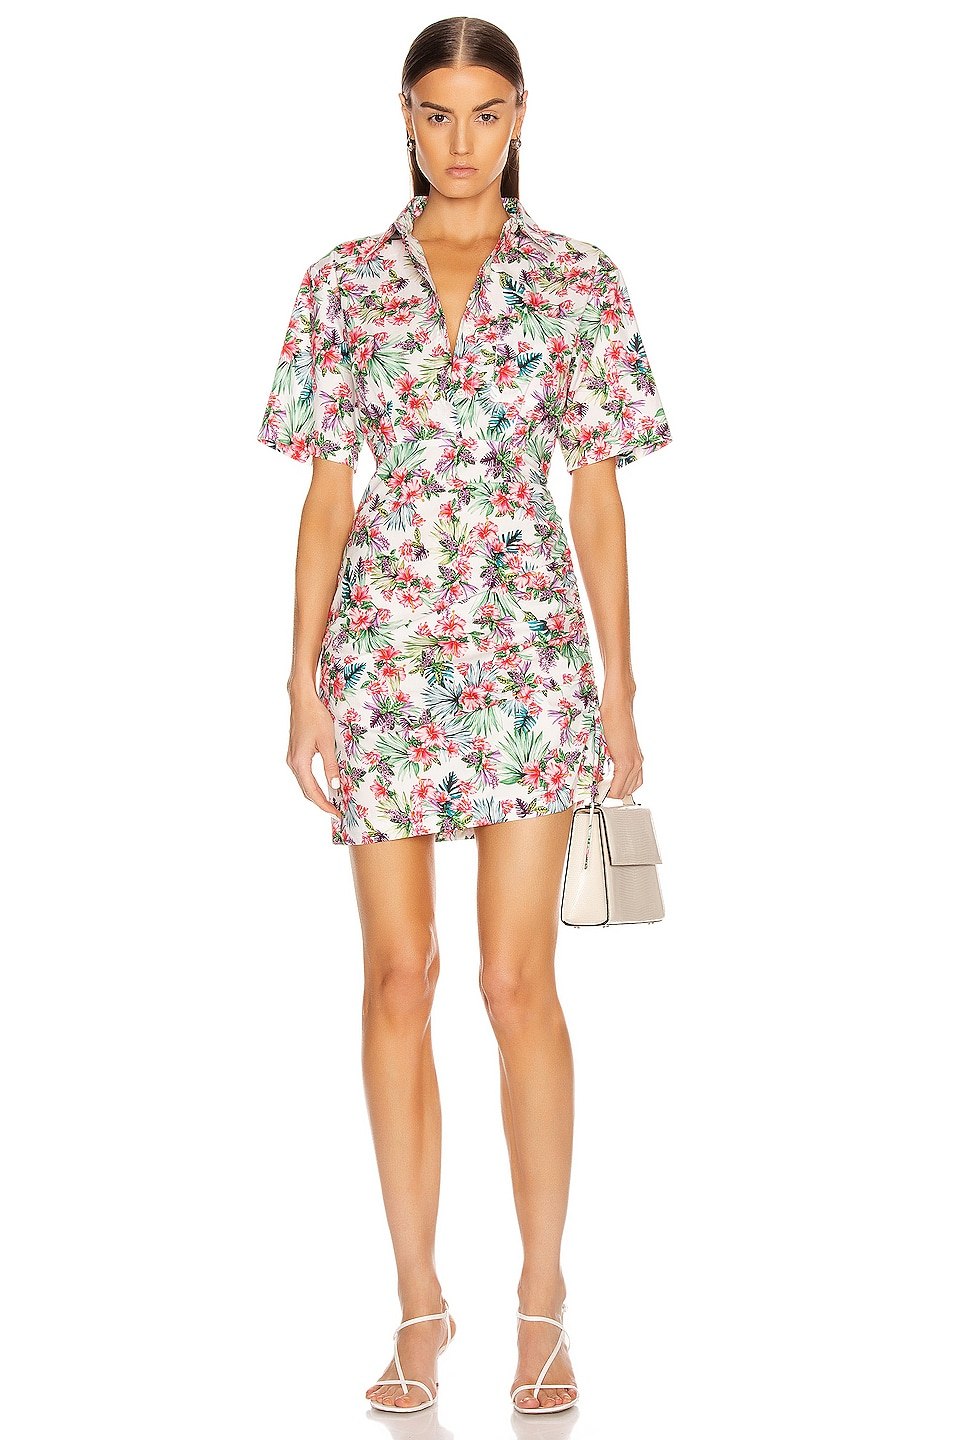 Image 1 of Les Reveries Ruched Skirt Cotton Shirt Dress in Hibiscus White